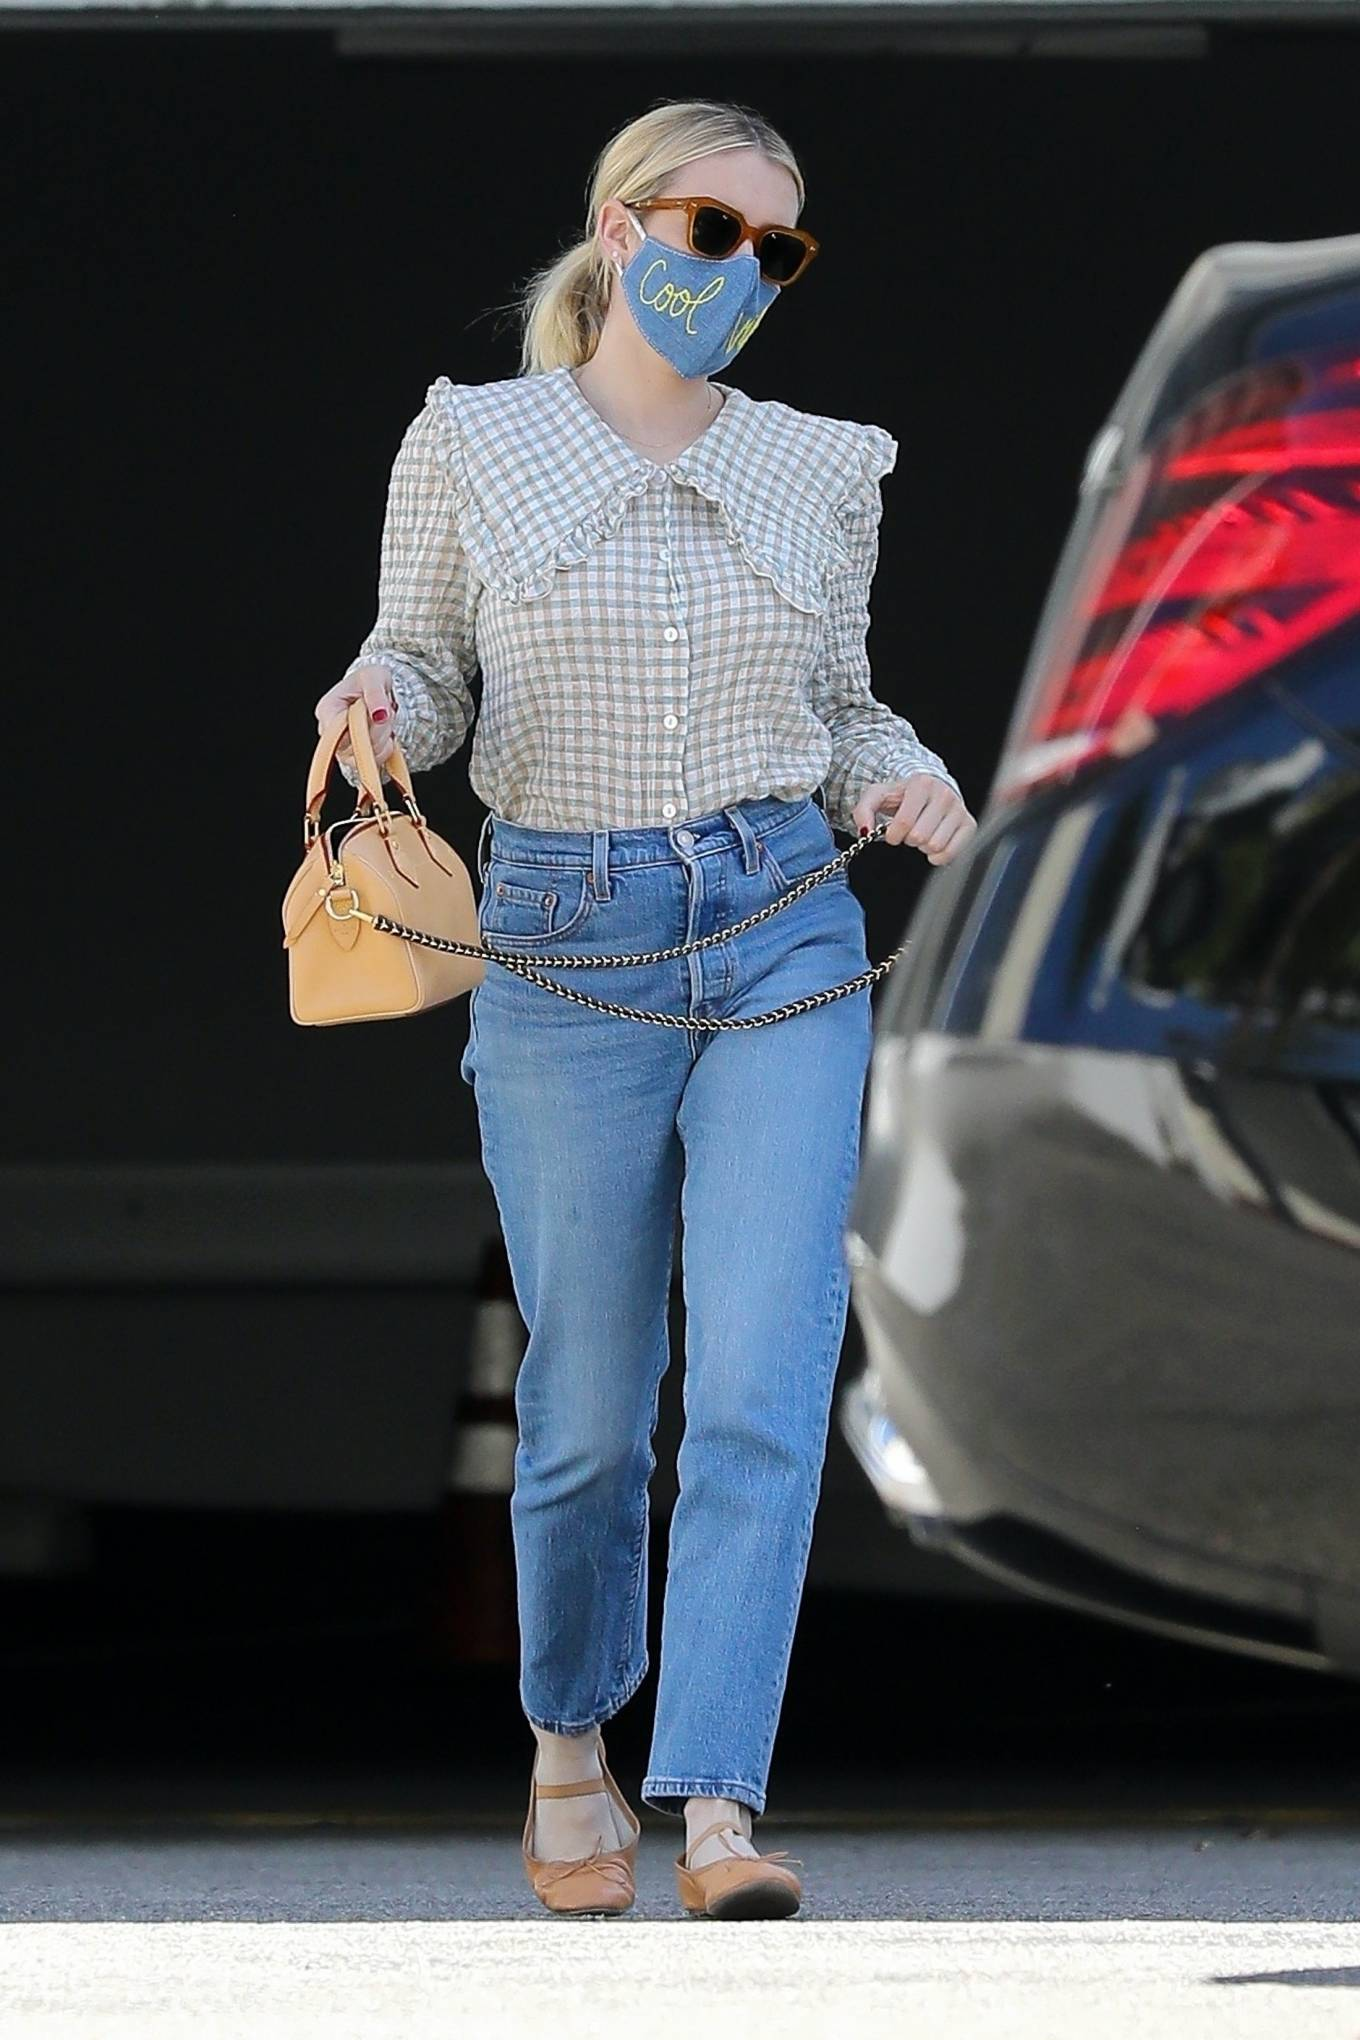 Emma Roberts 2021 : Emma Roberts – Wearing a mask reading Cool Vibes in West Hollywood-02